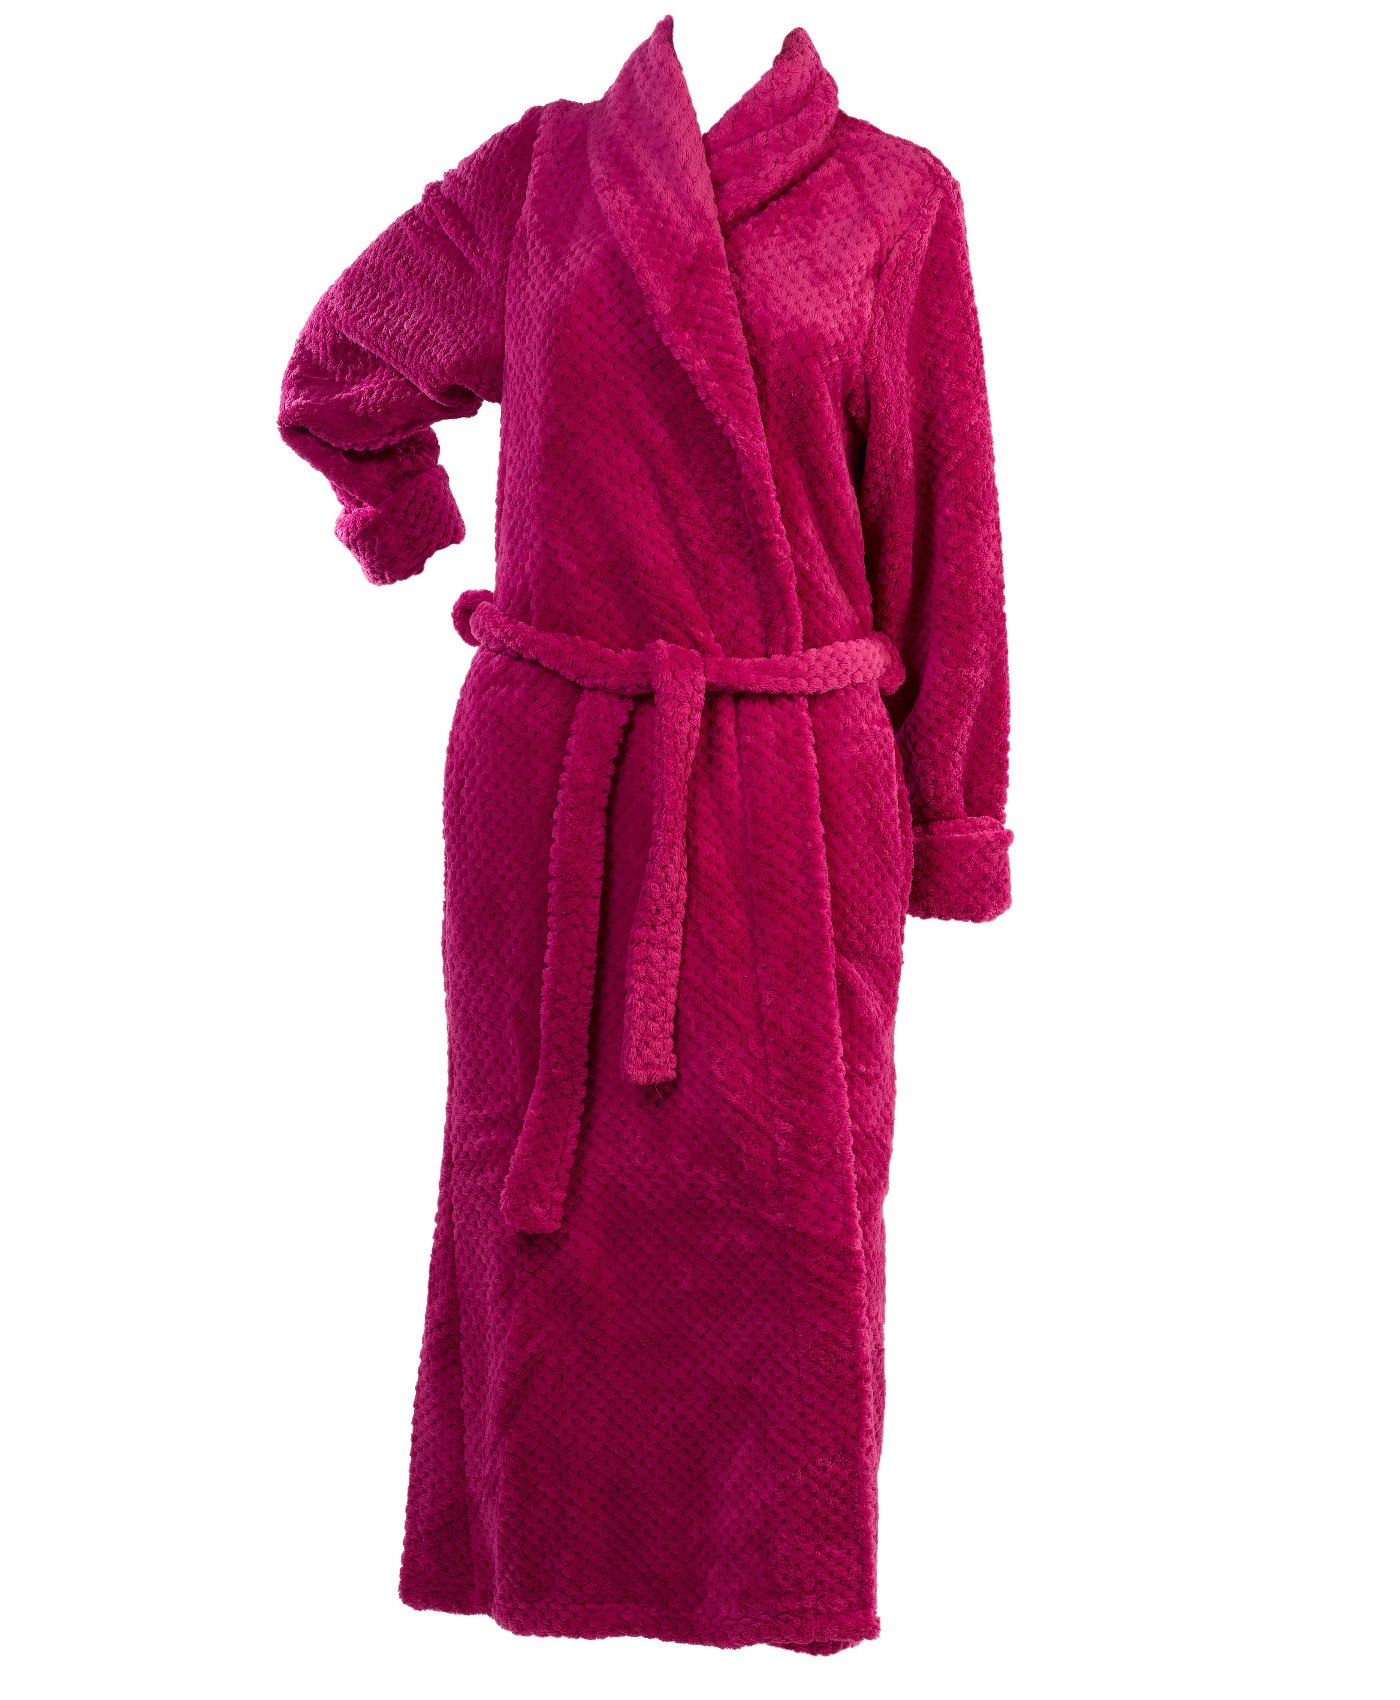 Soft Waffle Fleece Bed Jacket or Dressing Gown Robe Ladies ...